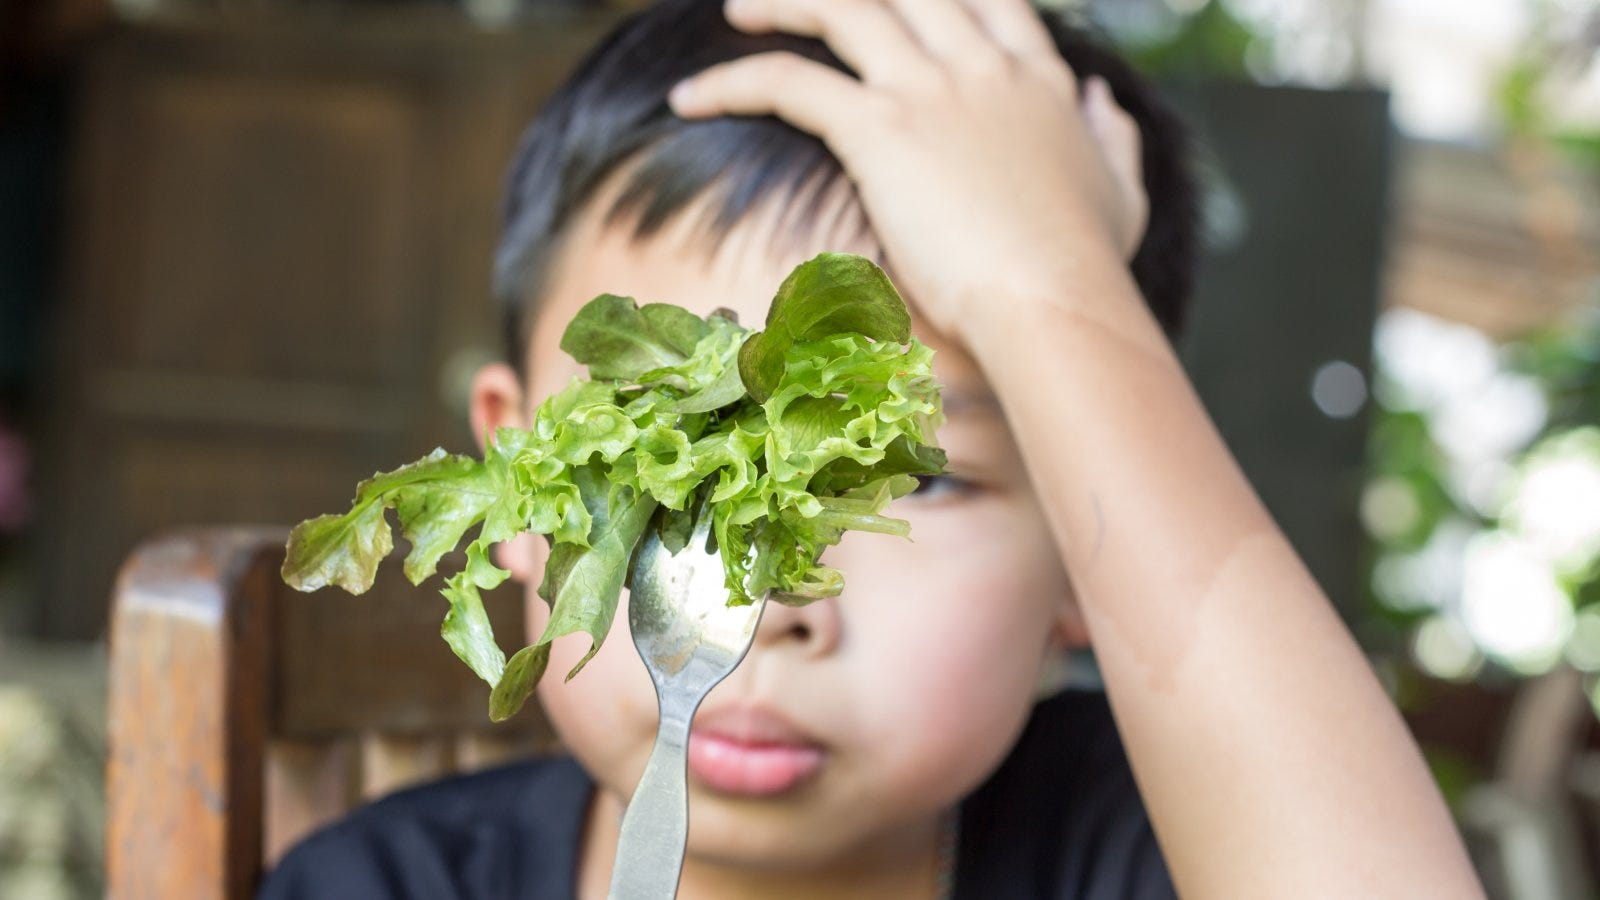 child staring unhappily at salad on a fork